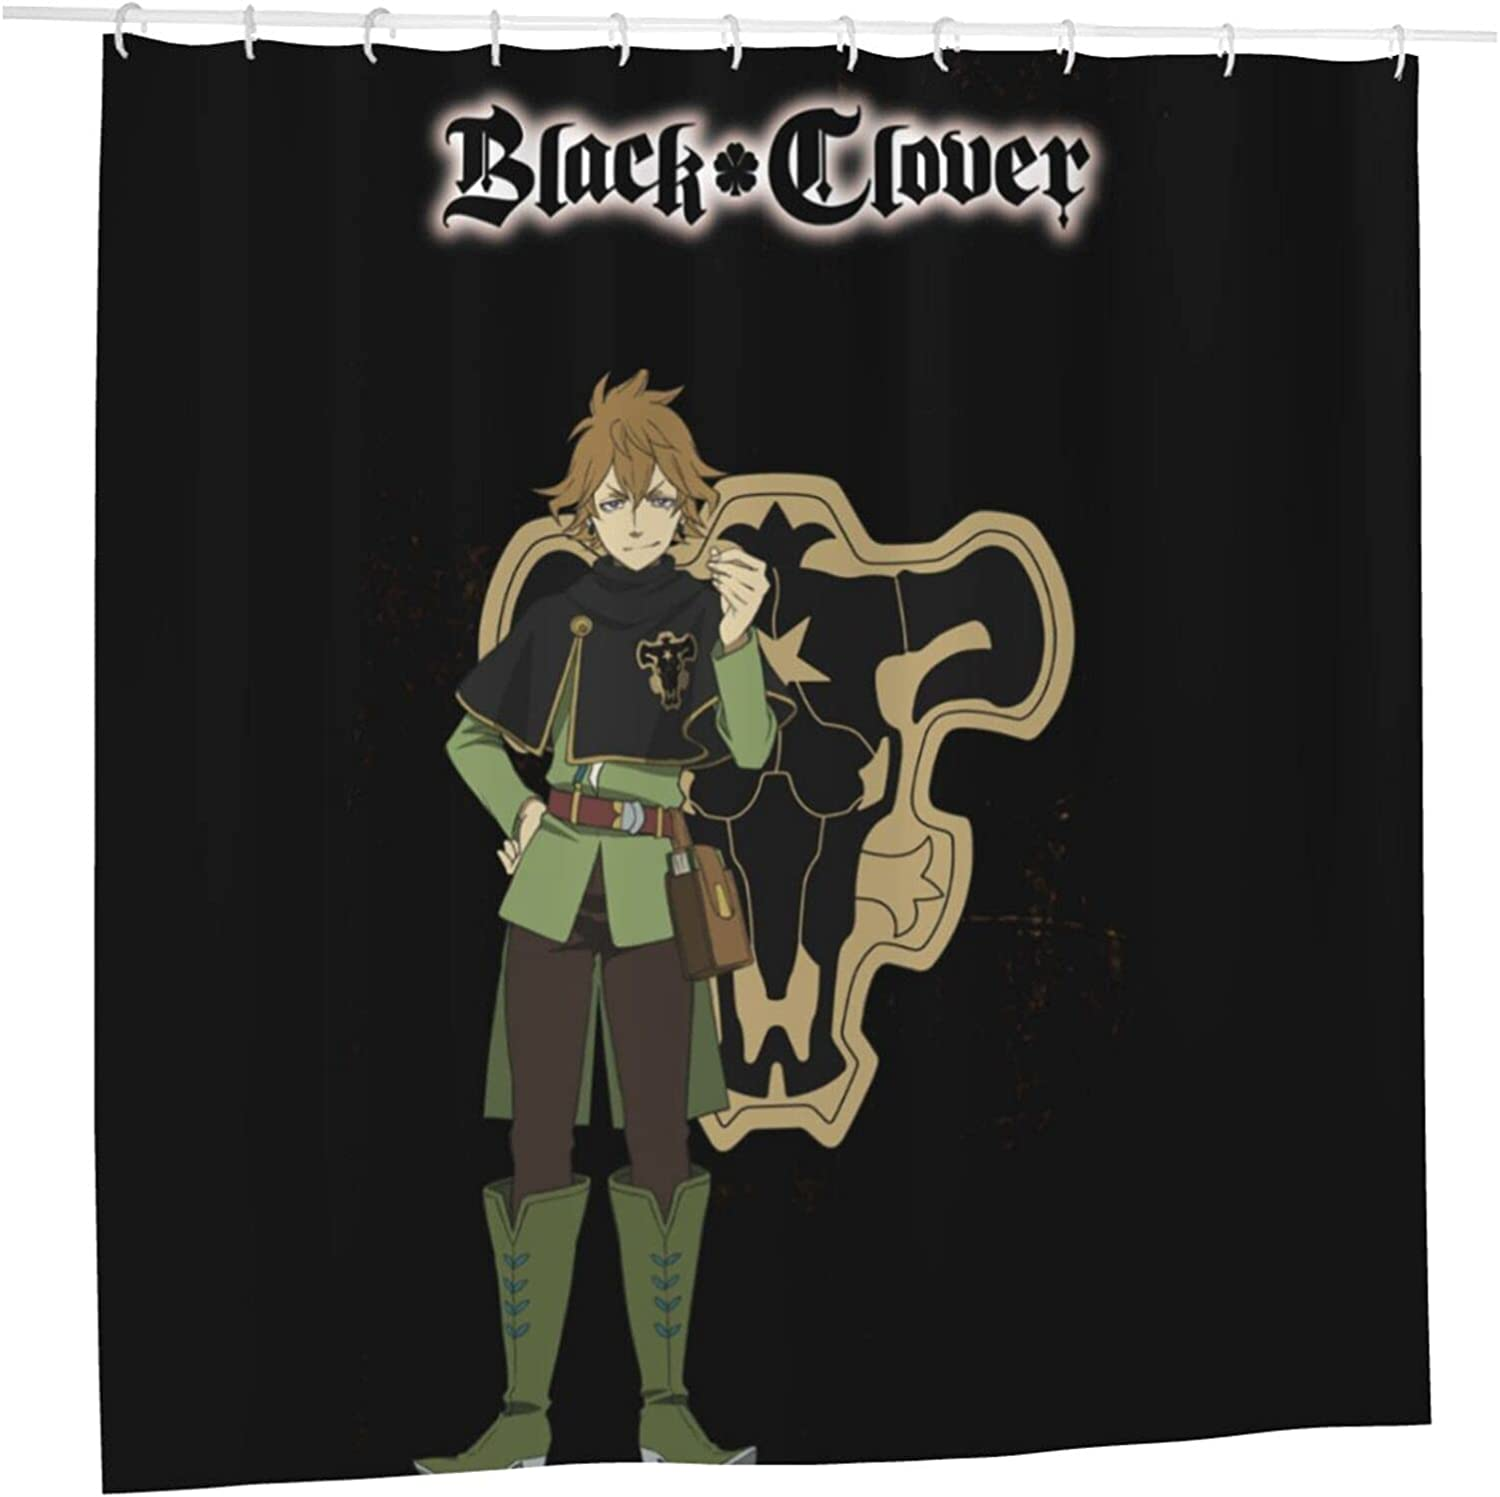 Black Clover free Anime Bathroom Shower Recommendation Curtain W Liner H 72